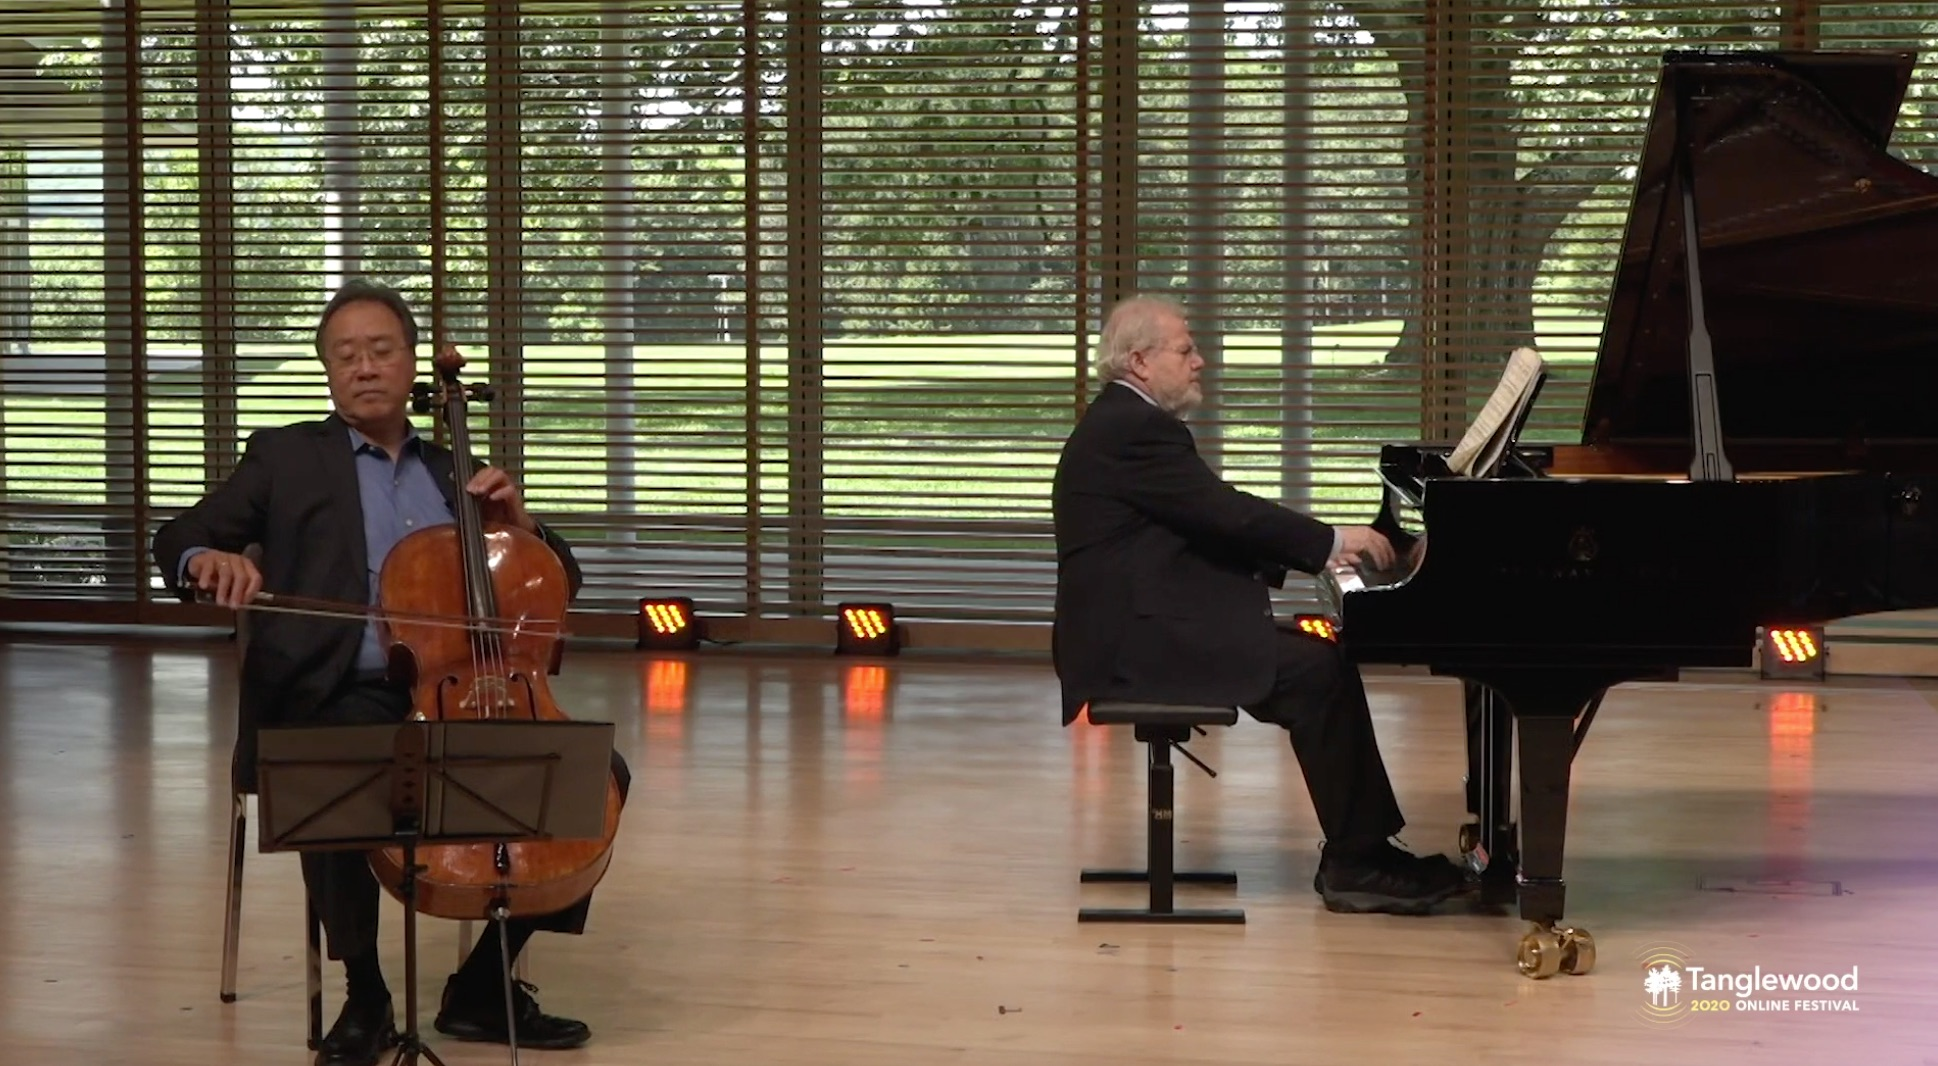 Tanglewood Stream Fishing 2020 Part 2: Yo-Yo Ma and Emanuel Ax Play Brahms, Beethoven, Mendelssohn